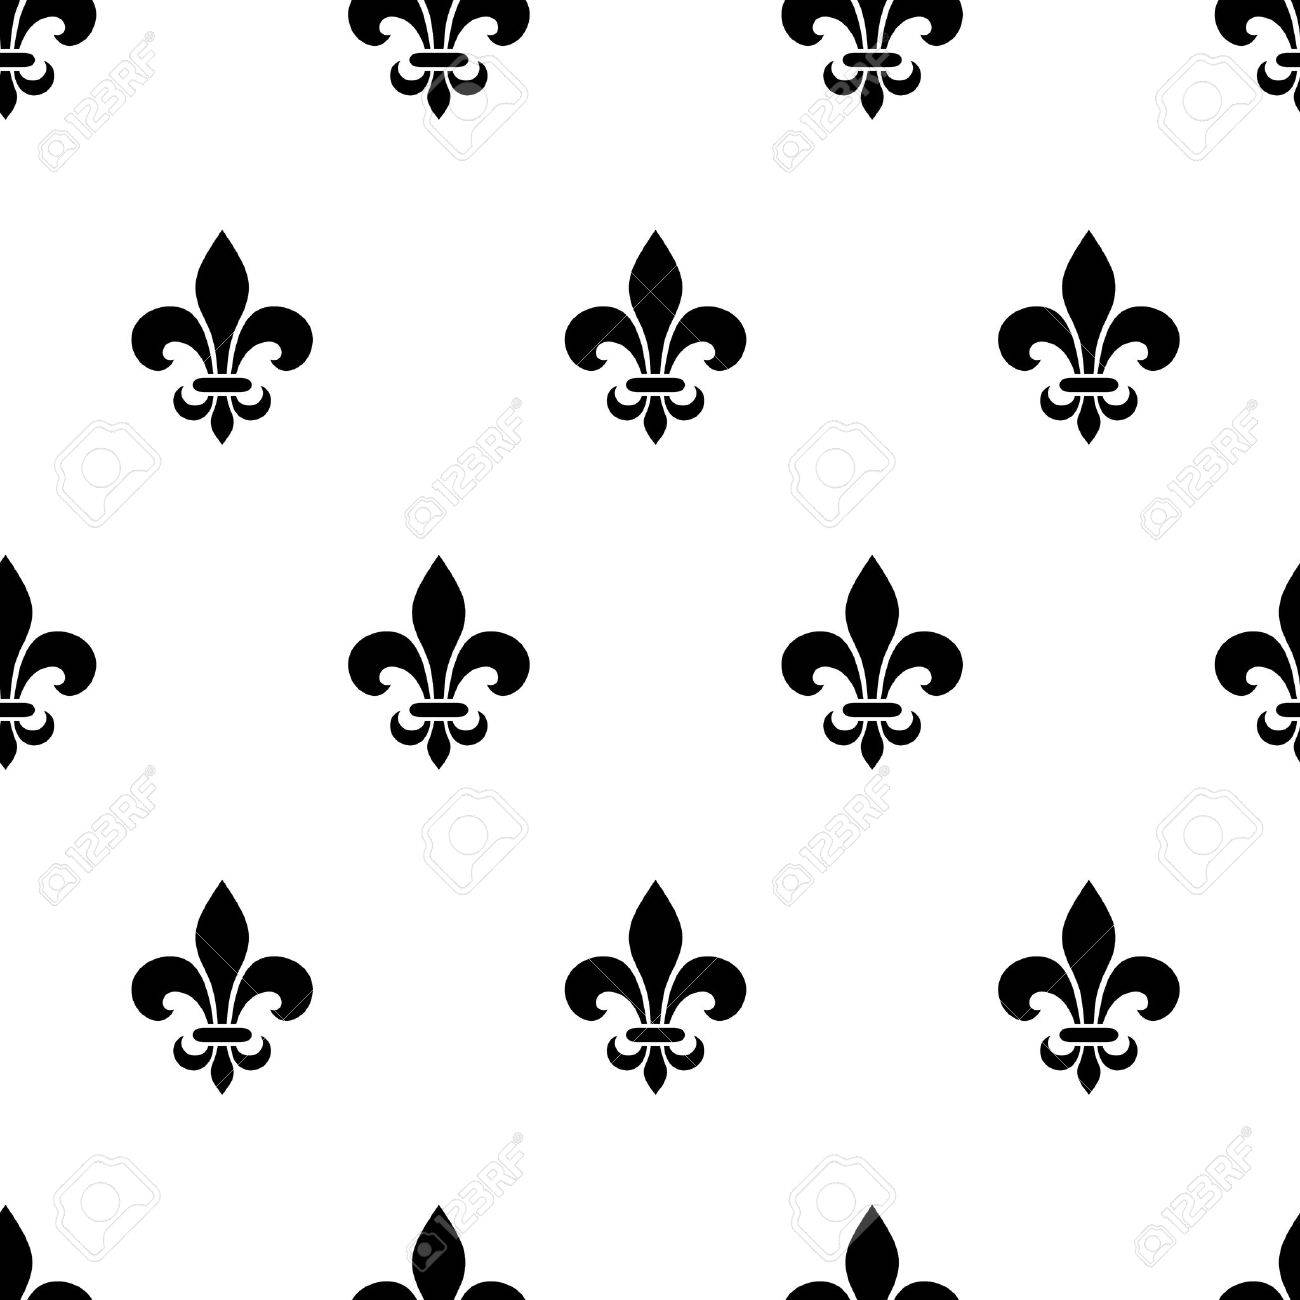 Vector Seamless Black And White Pattern With Fleur De Lis Symbols